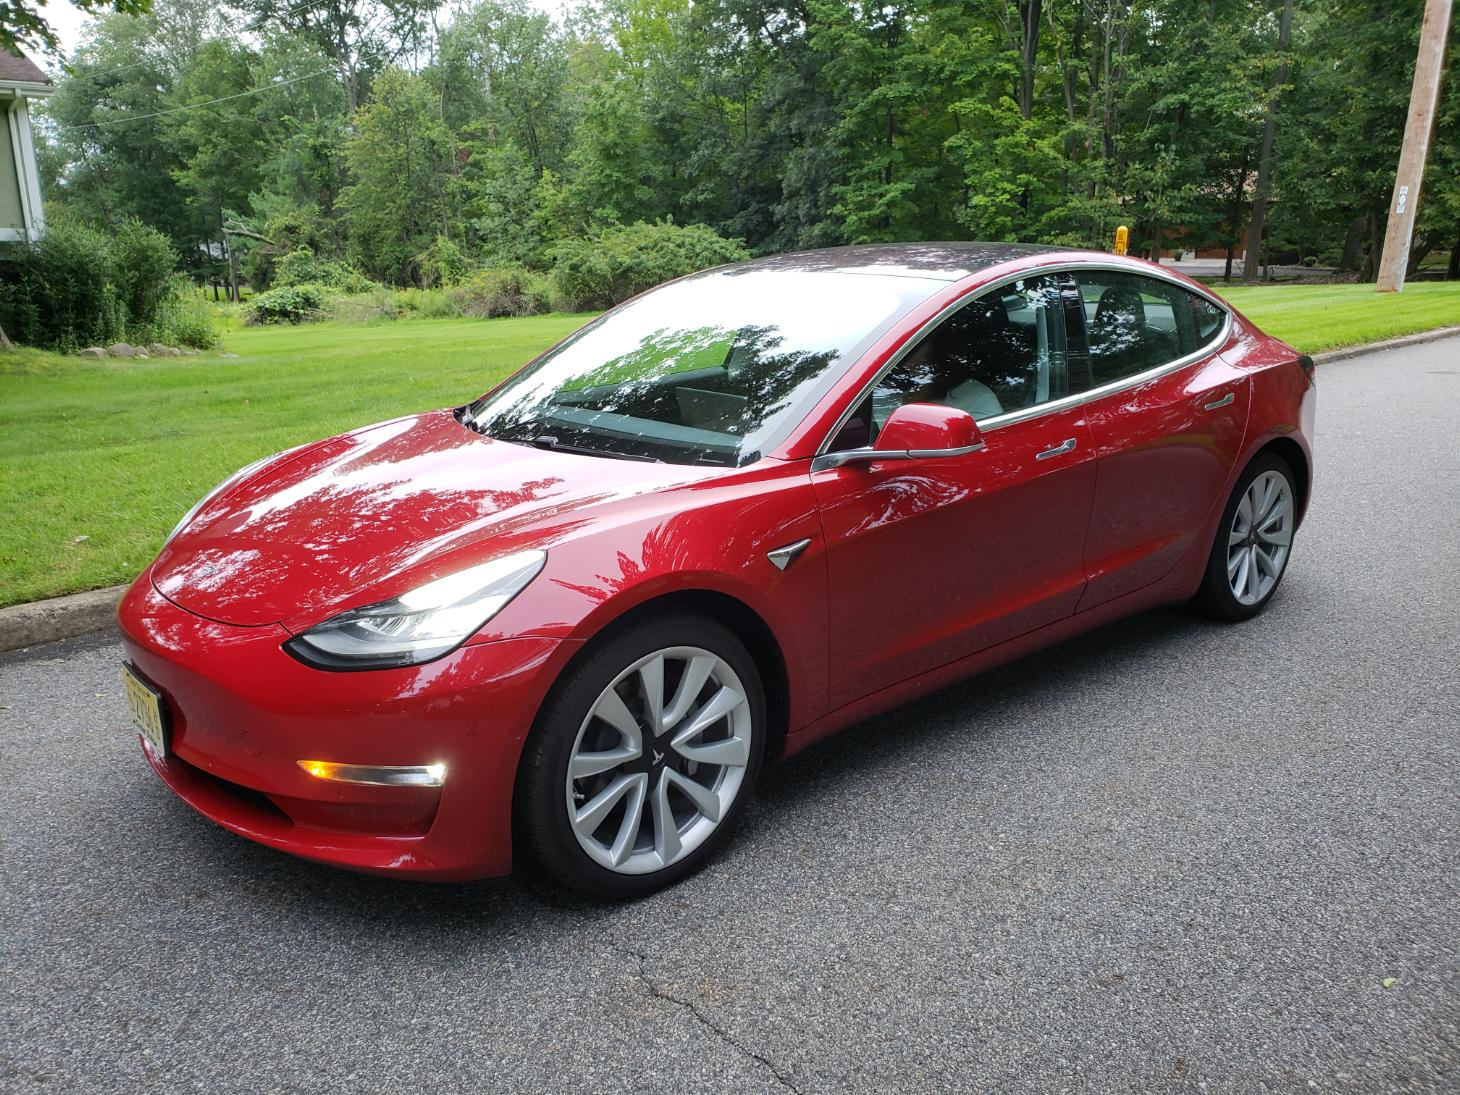 tesla 3 red photo 4.jpg